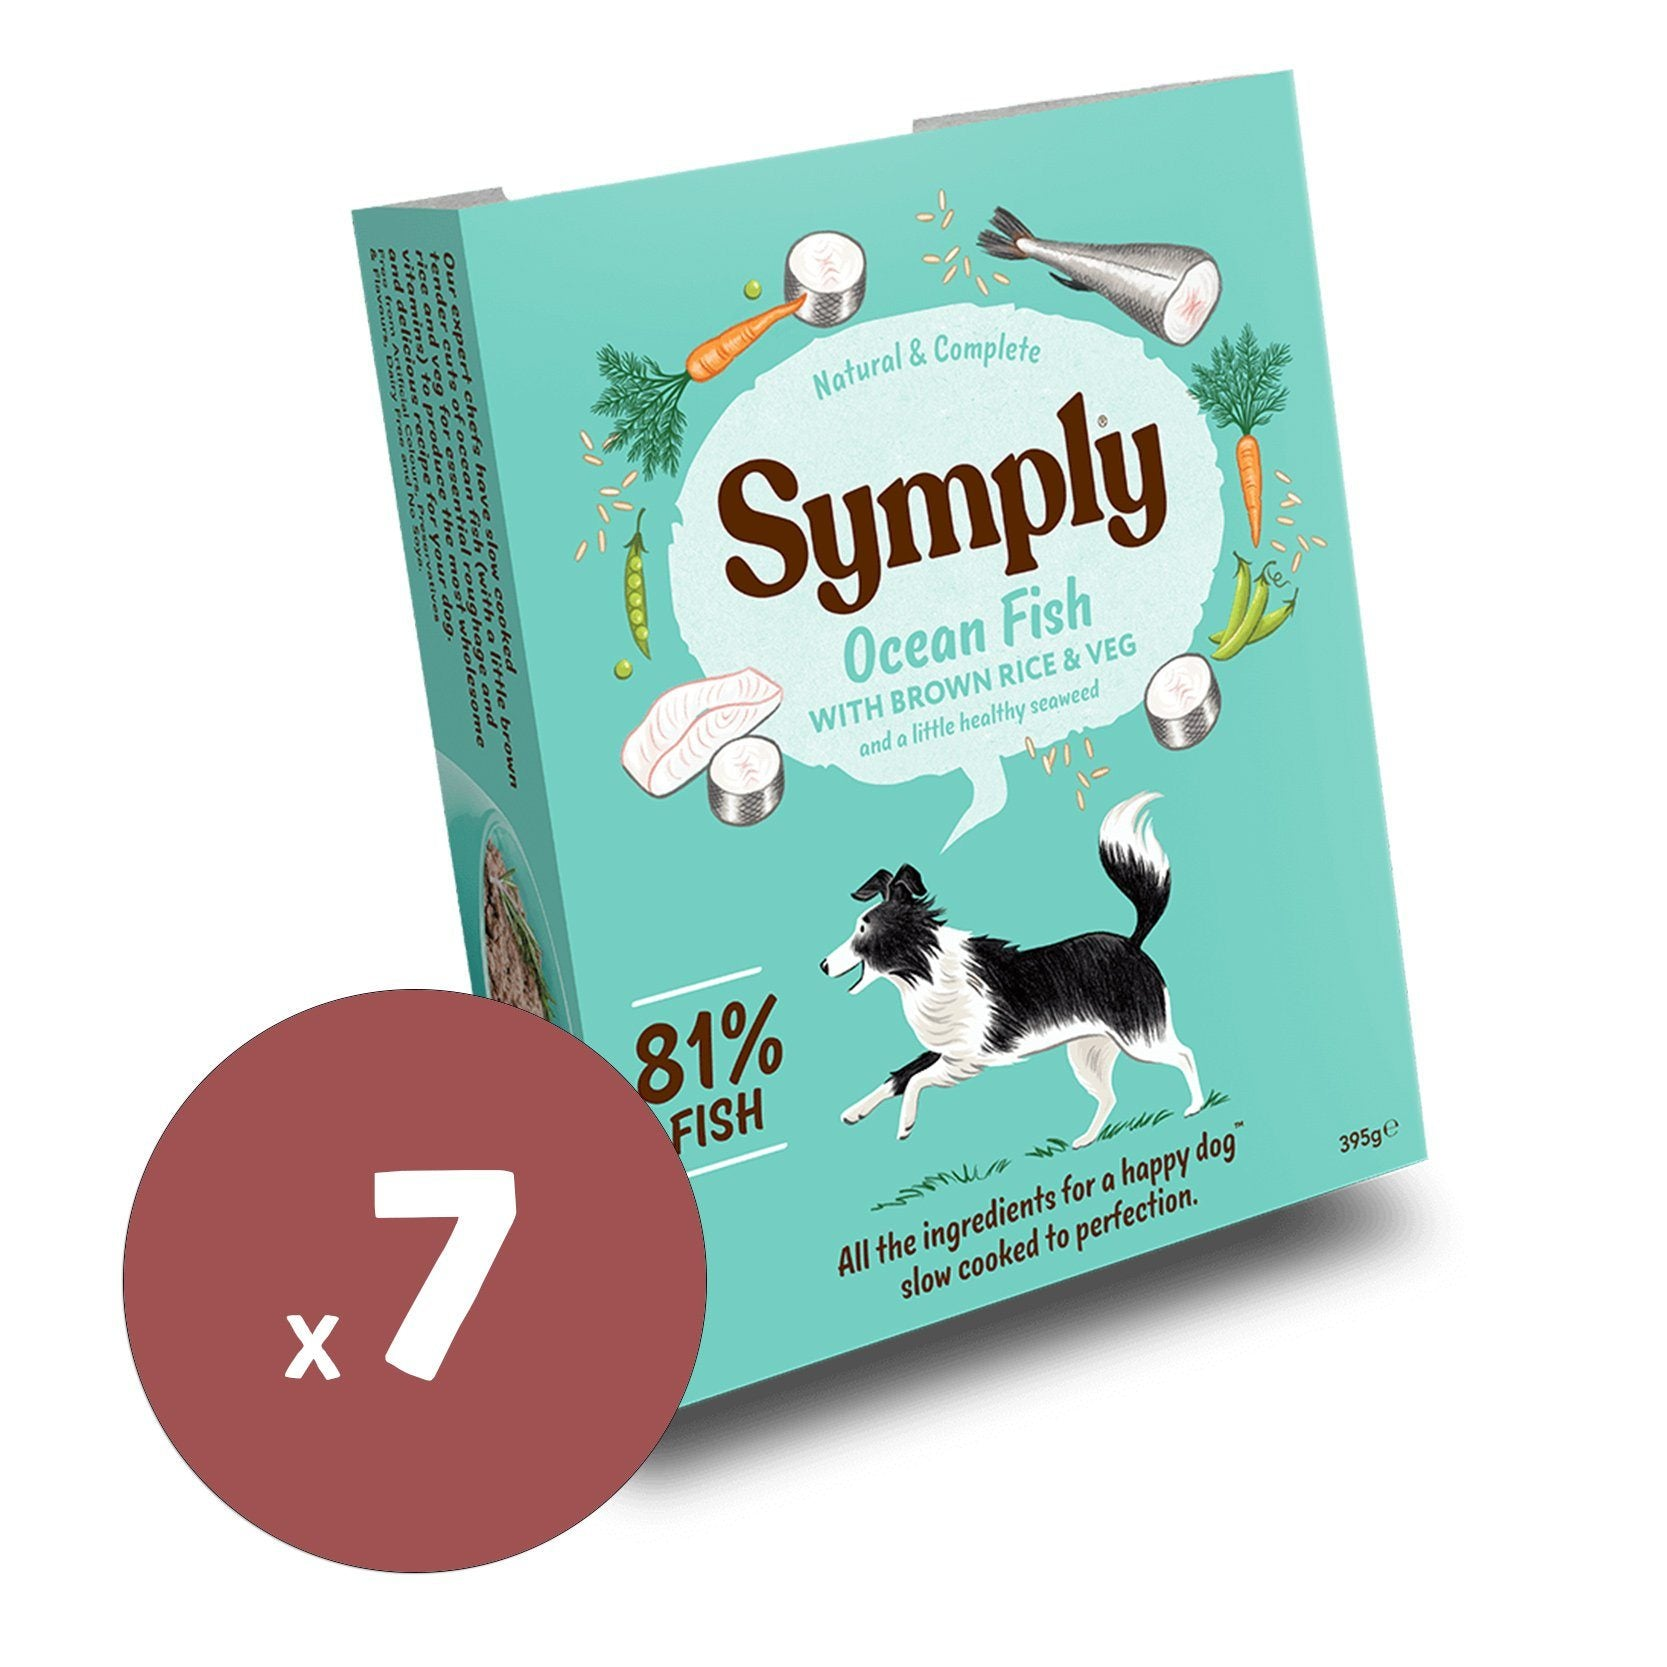 Symply Wet Food Ocean Fish 395gx7 Dog Food - Wet Symply